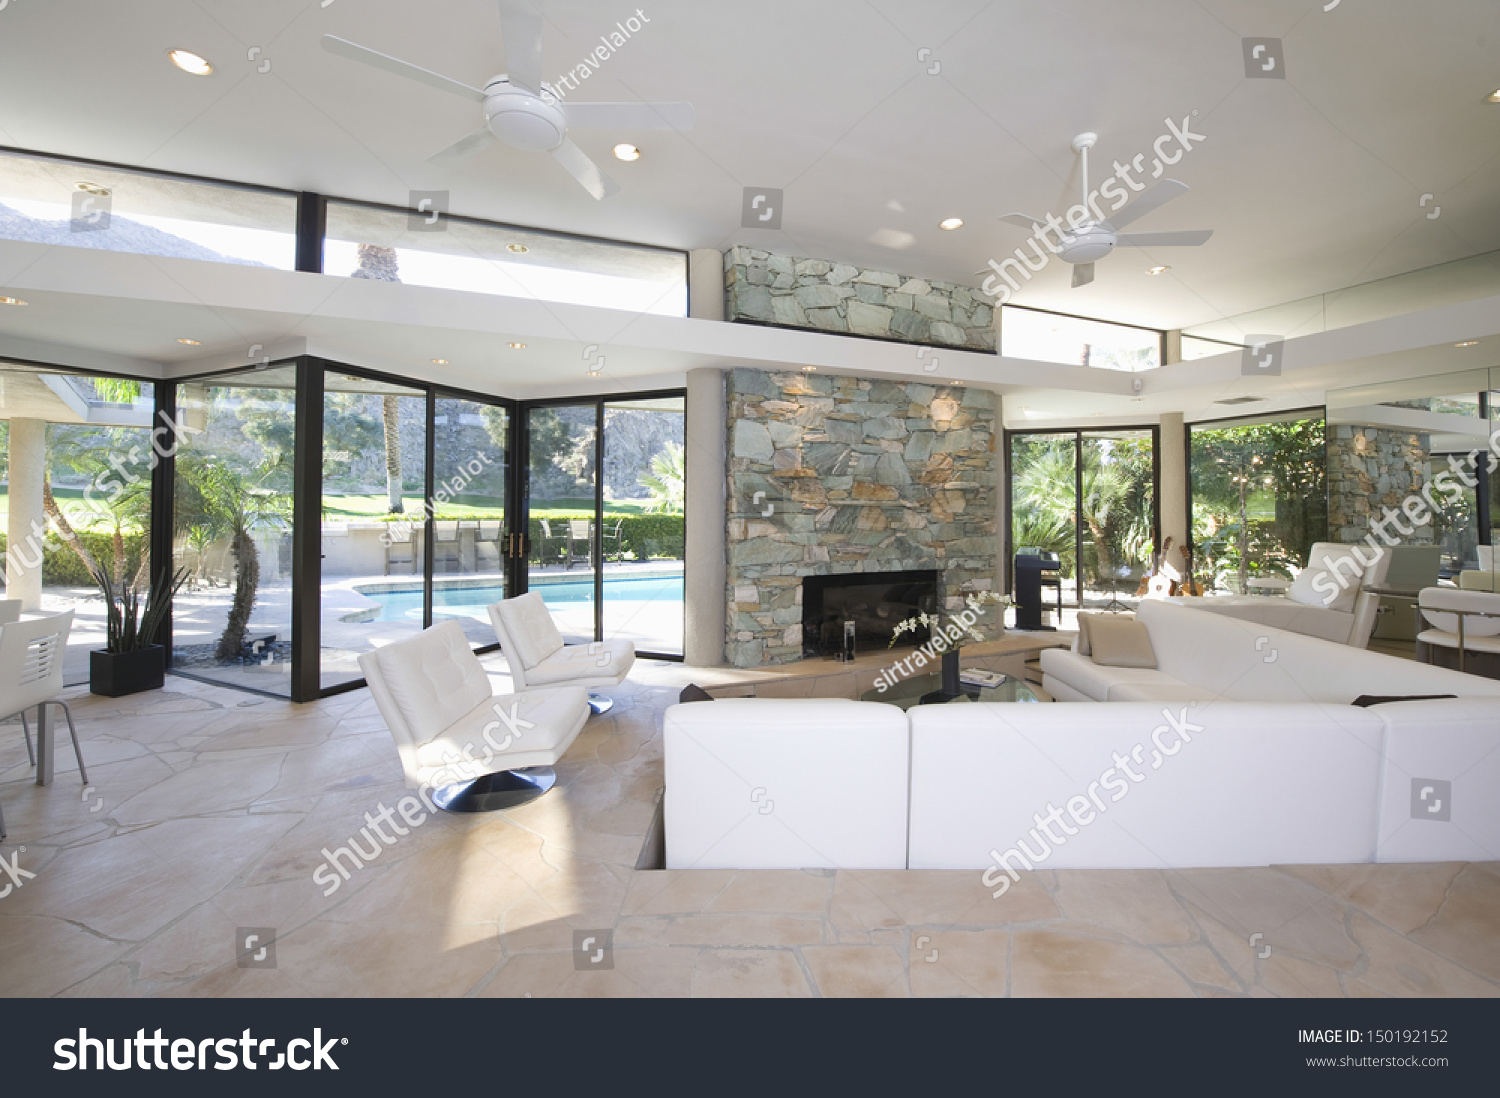 Sunken Seating Area And Exposed Stone Fireplace In Spacious Living Room With View Of Swimming Pool